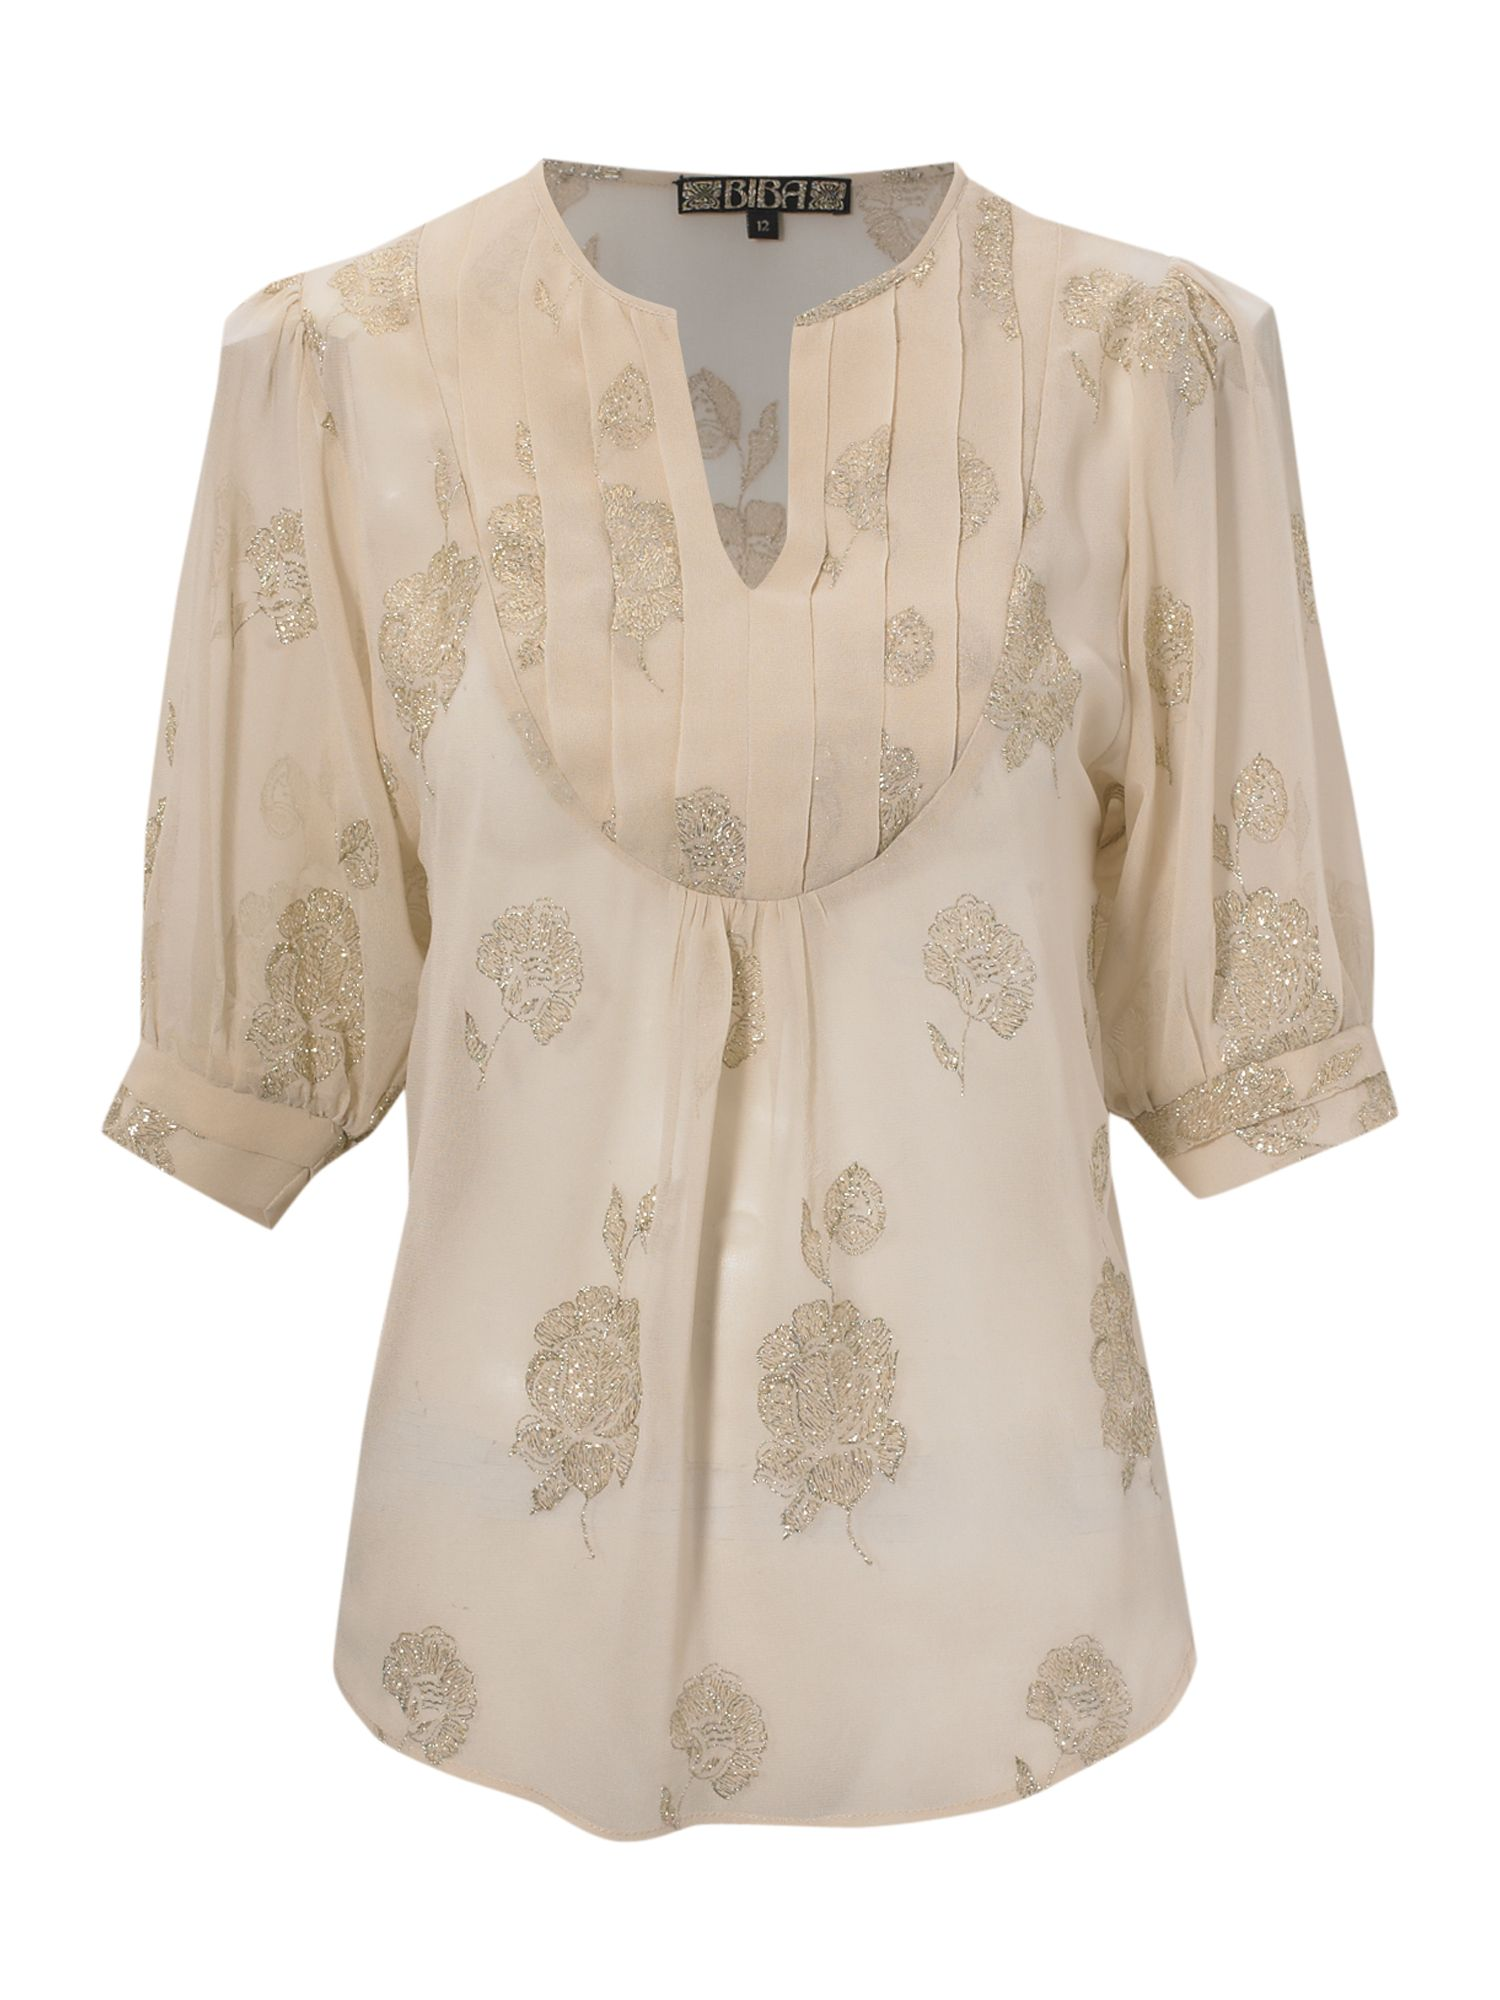 Biba Womens Biba Pin tuck jaquard blouse, Cream product image